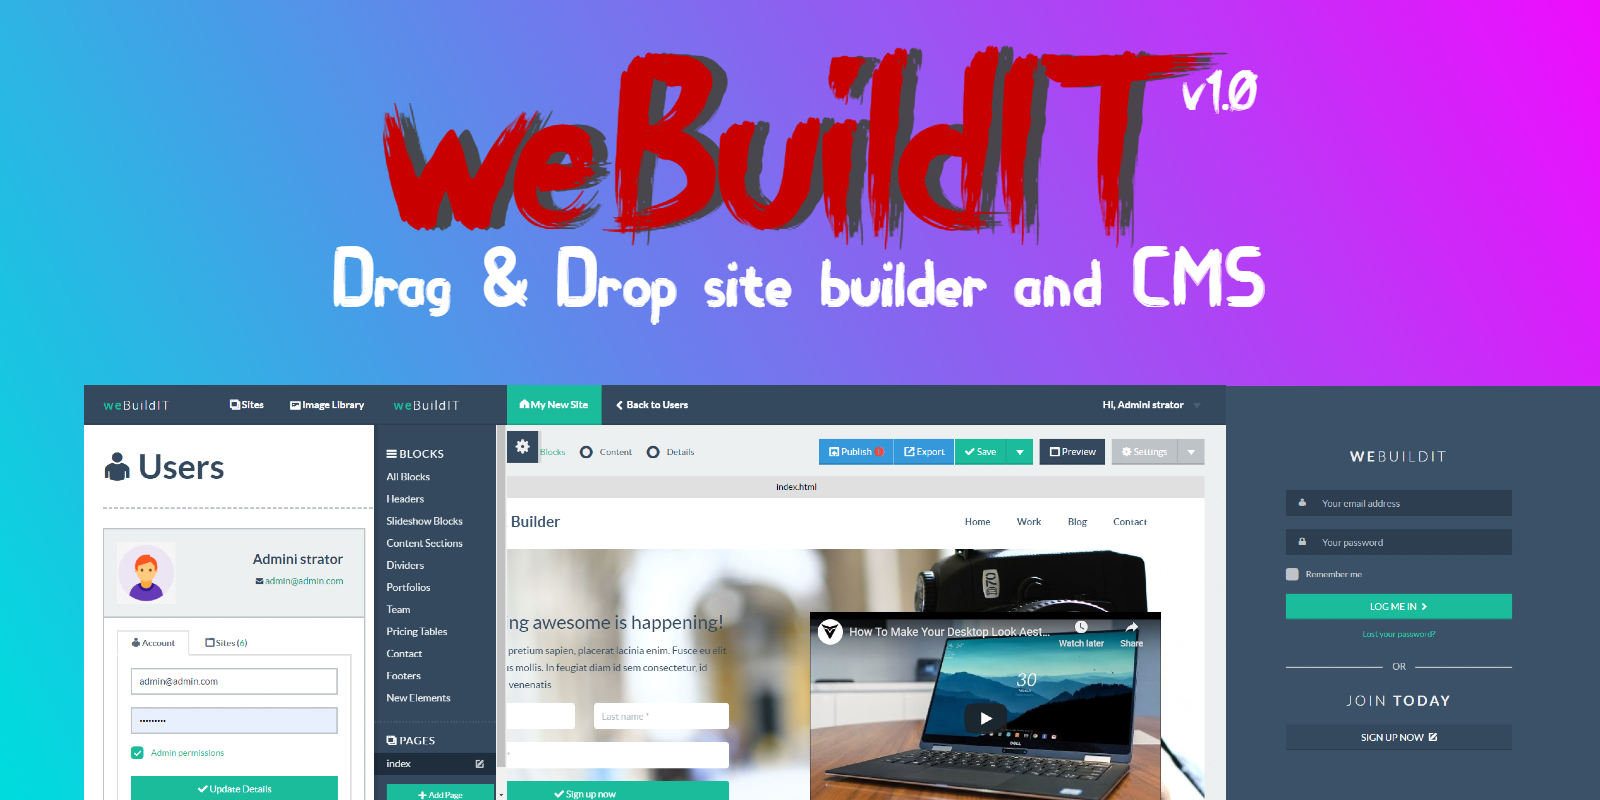 weBuildIT - Drag And Drop Site Builder And CMS